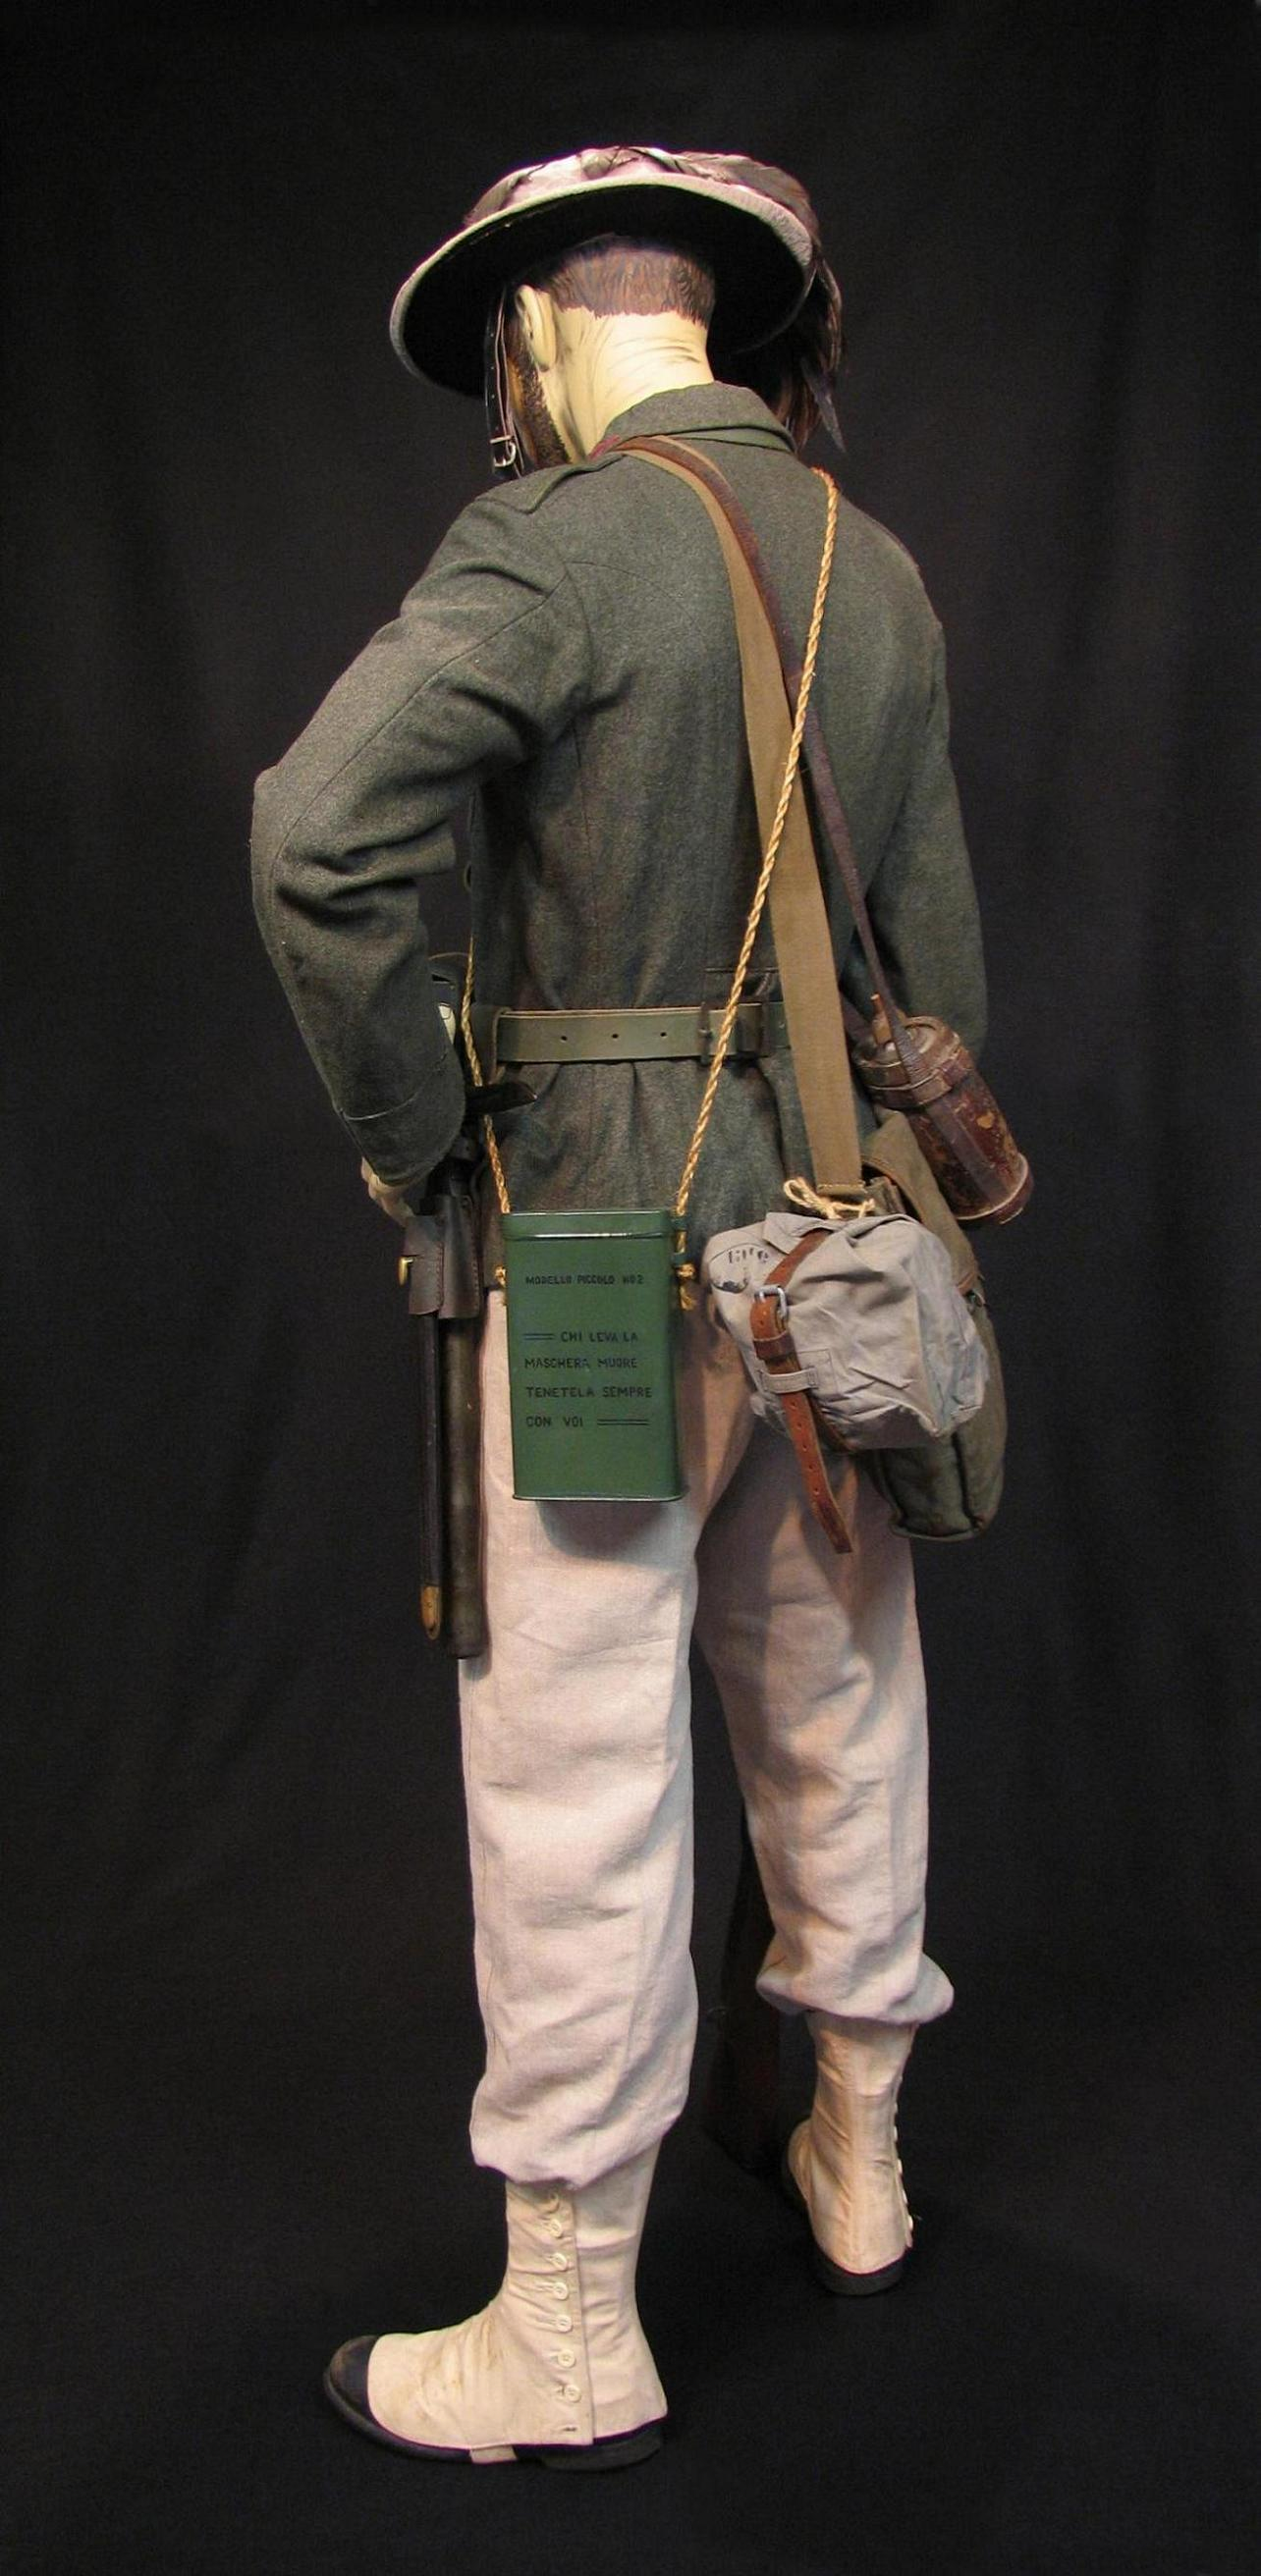 Bersaglieri Display w-o Cloak c1915-16 008-R.JPG